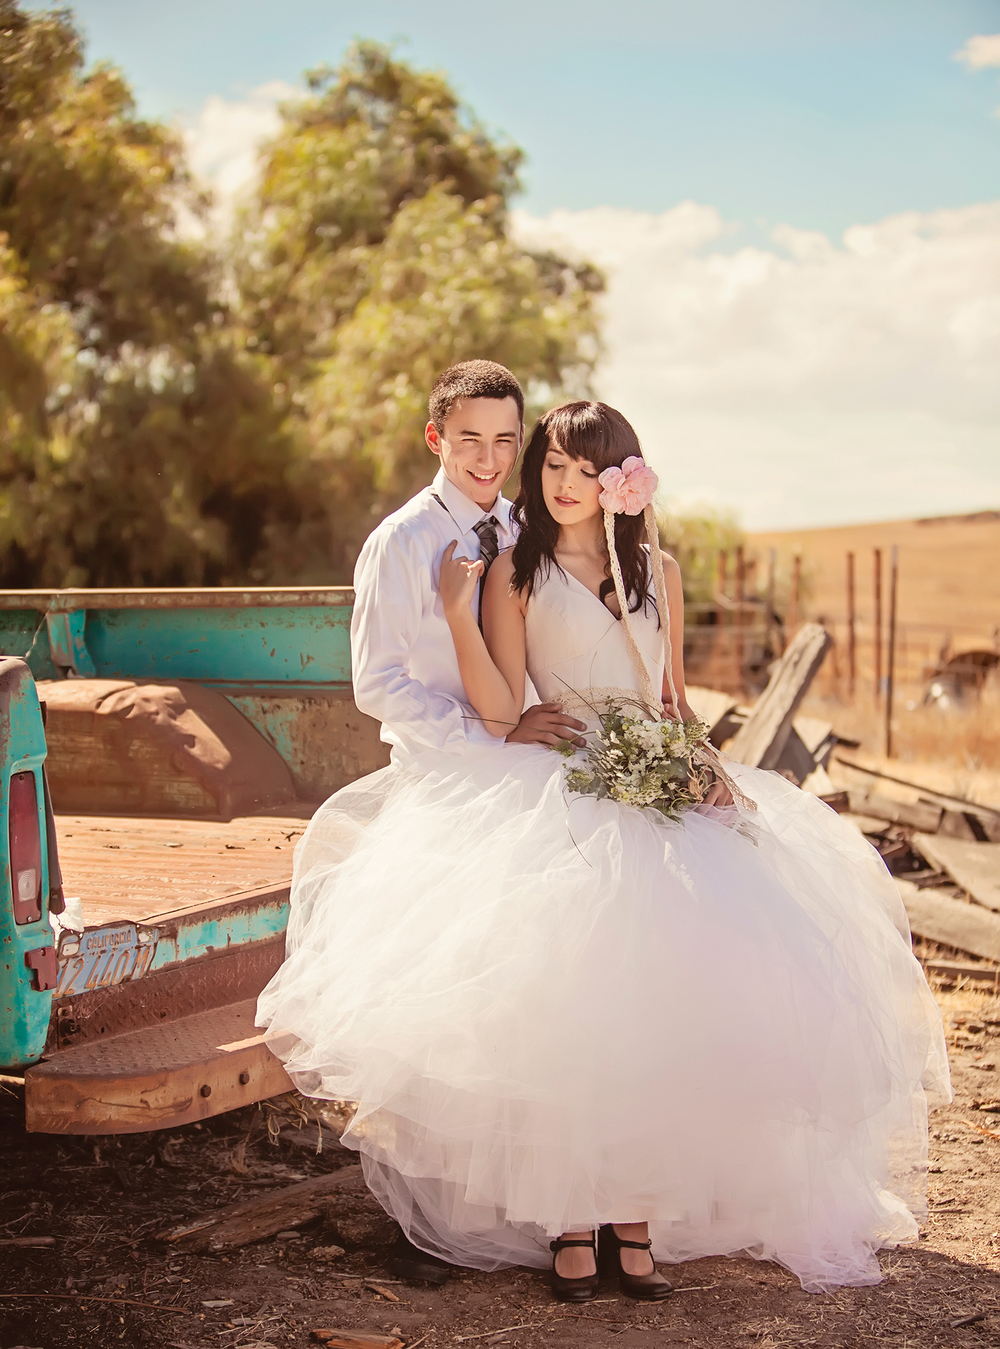 Dena_Rooney_Wedding_Photographer_Ranch_007.jpg